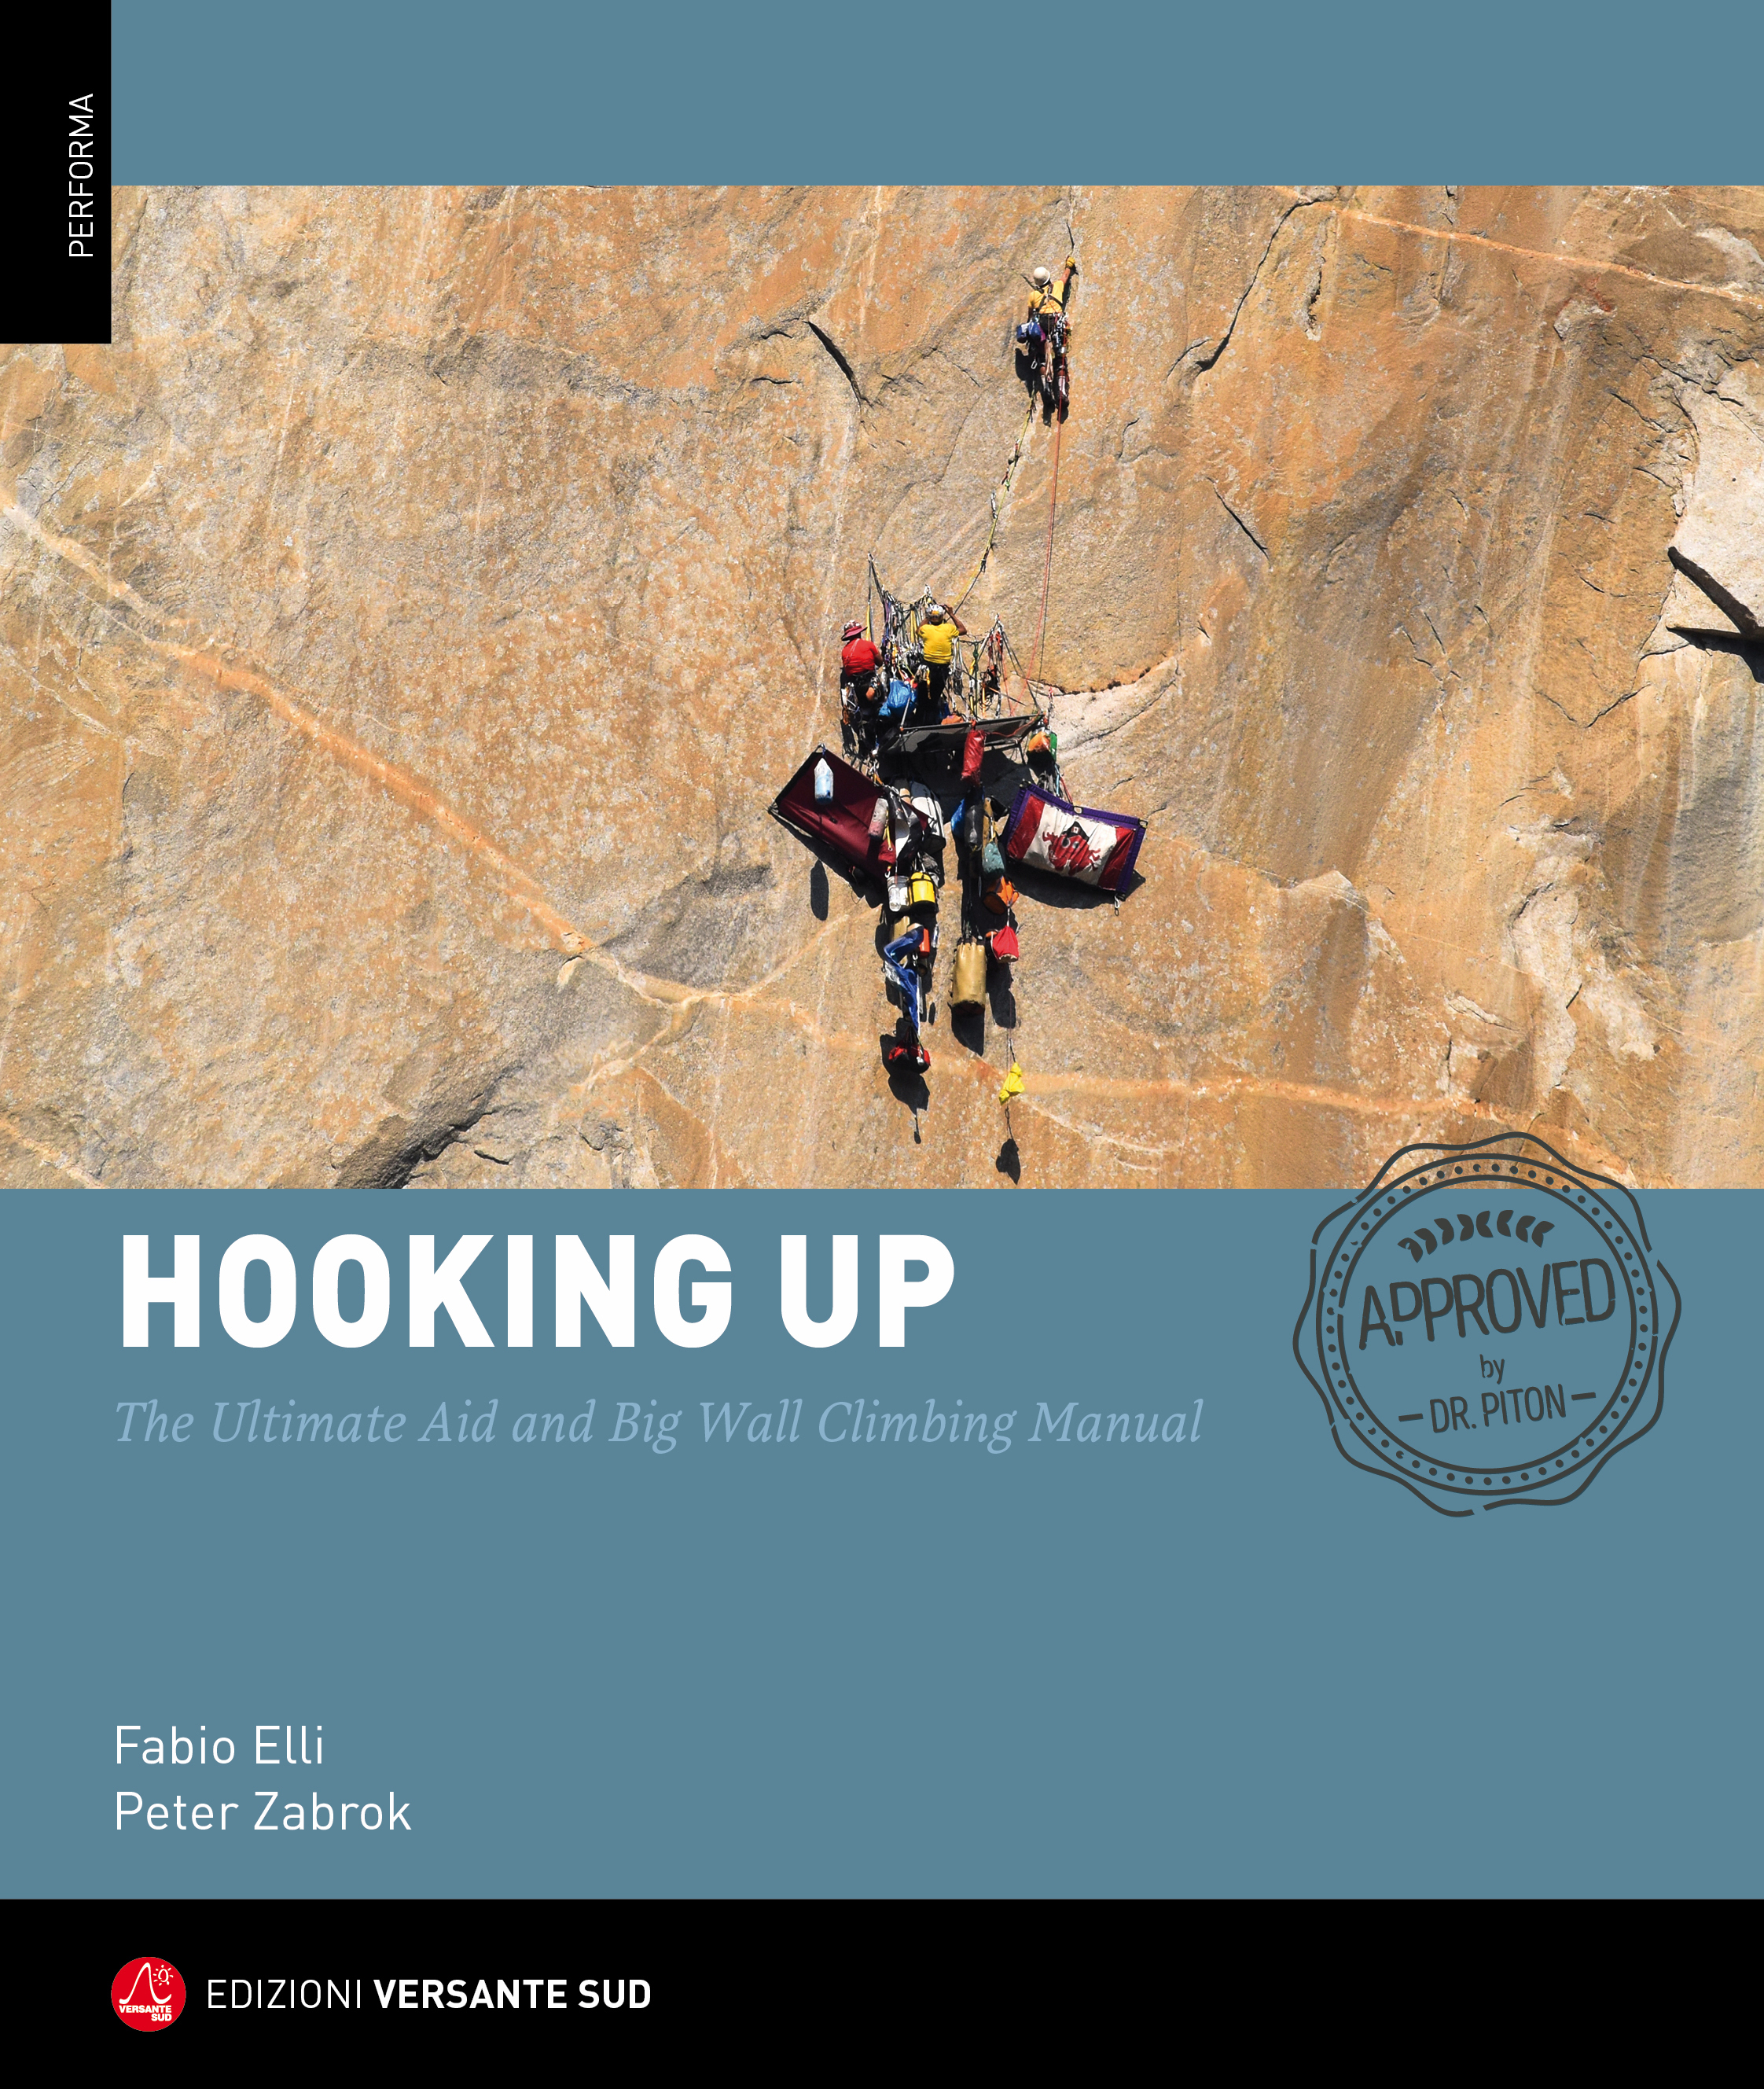 [Book cover] Hooking Up: The Ultimate Big Wall and Aid Climbing Manual (2019), by Peter Zabrok and Fabio Elli, $59.95. [Cover photo] Tom Evans